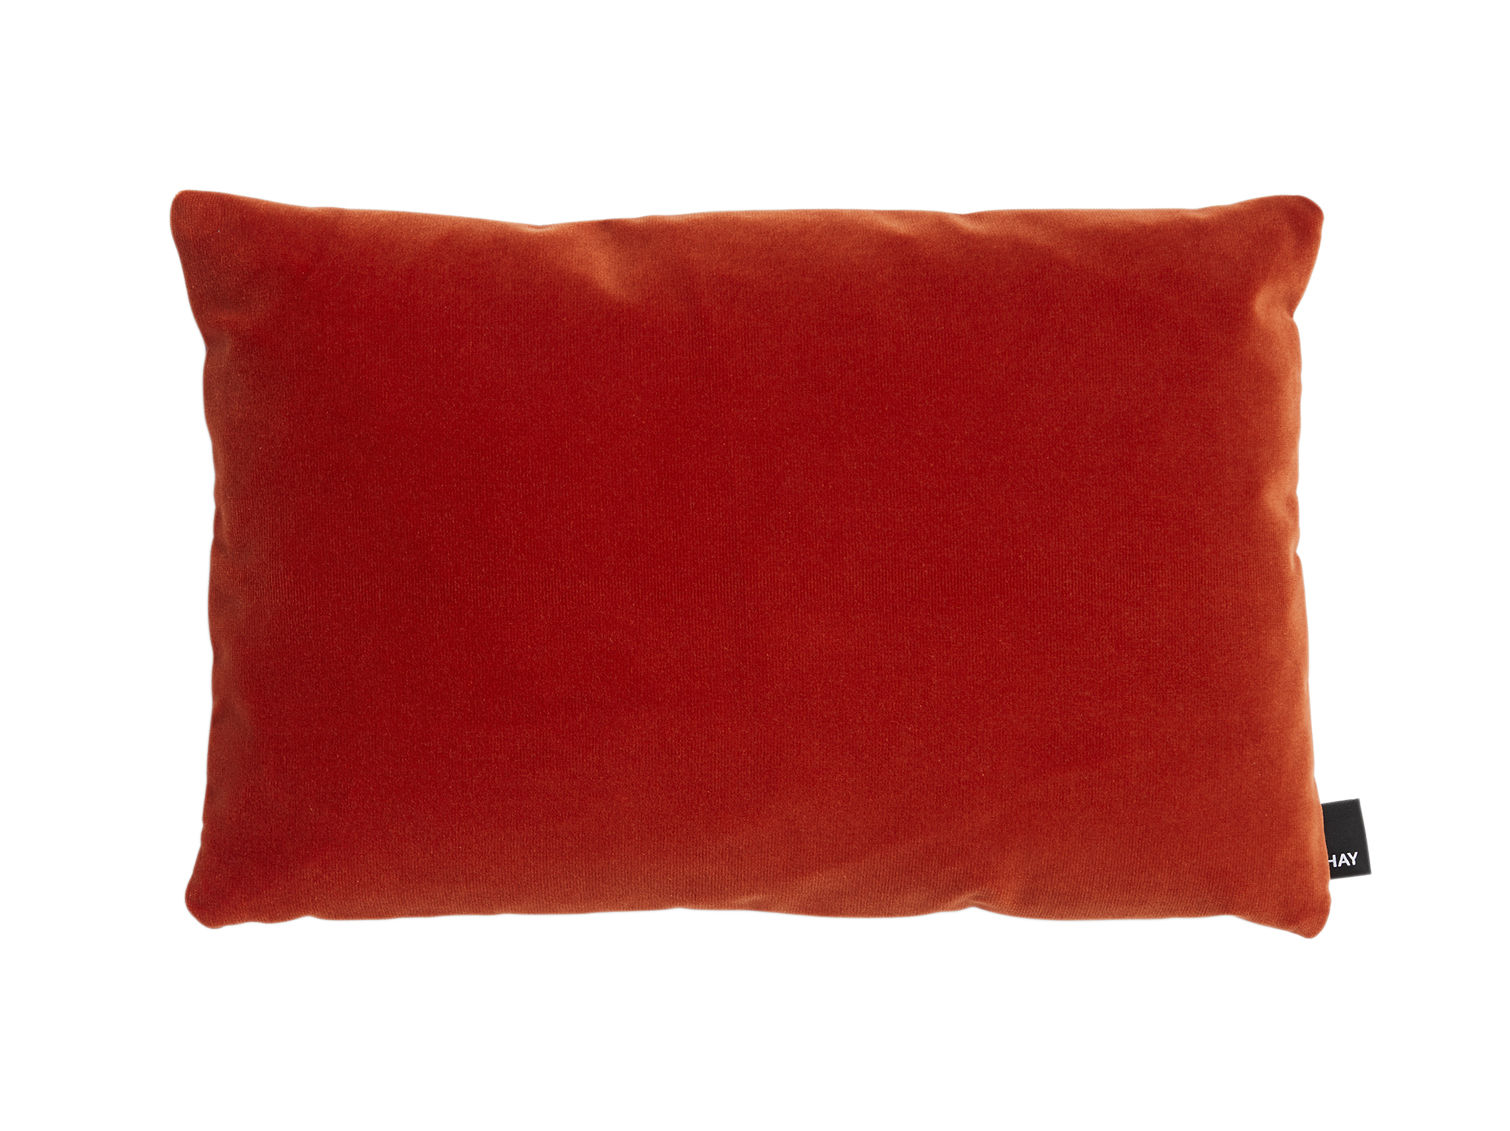 Decoration - Cushions & Poufs - Eclectic Cushion - / 45 x 30 cm by Hay - Vibrant red -  Plumes, Velvet, Wool